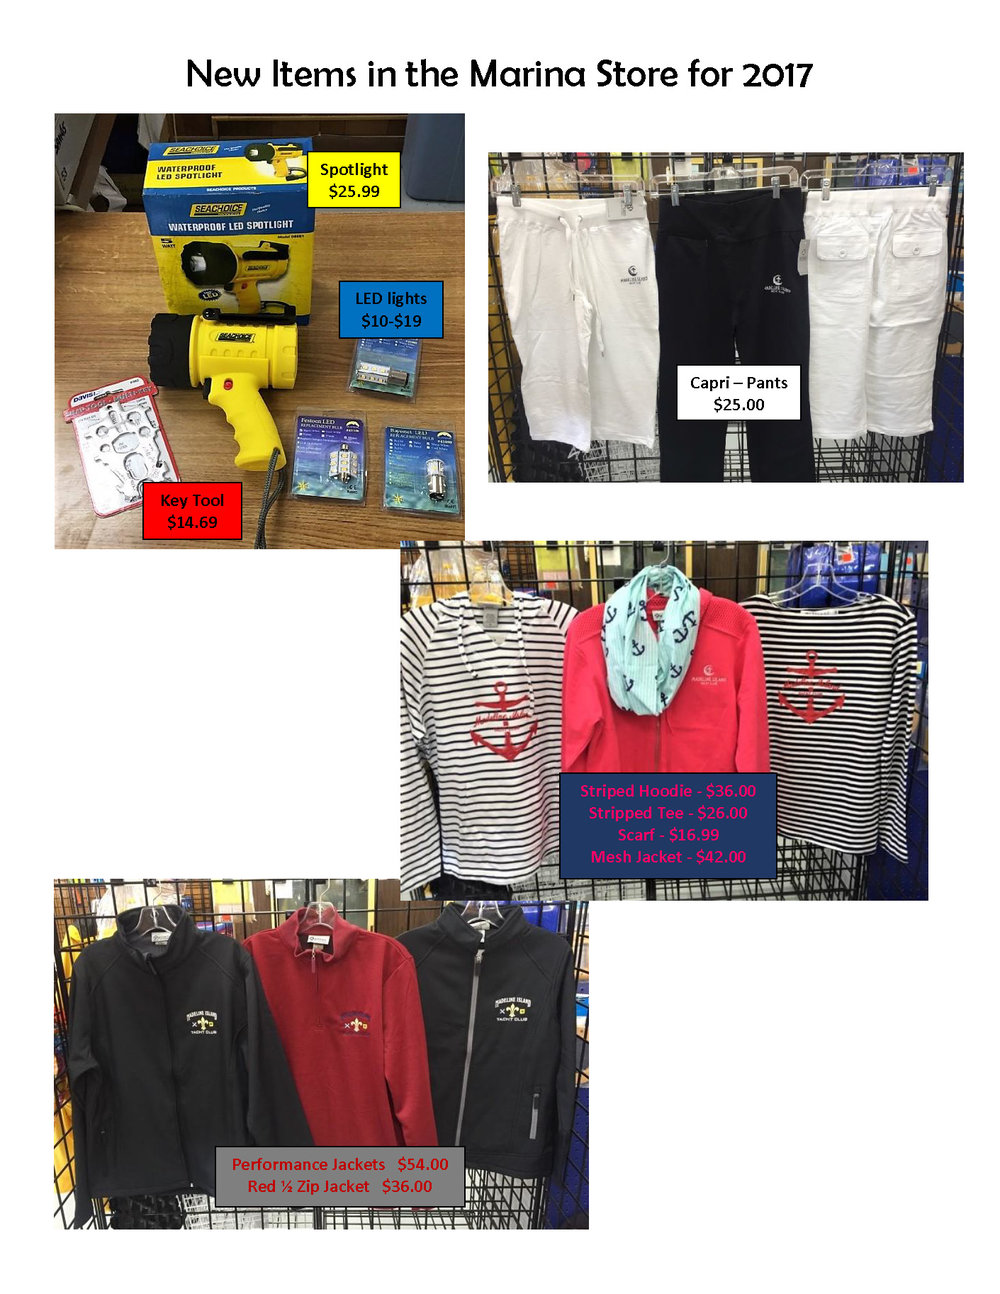 New Items in the Marina Store for 2017.jpg